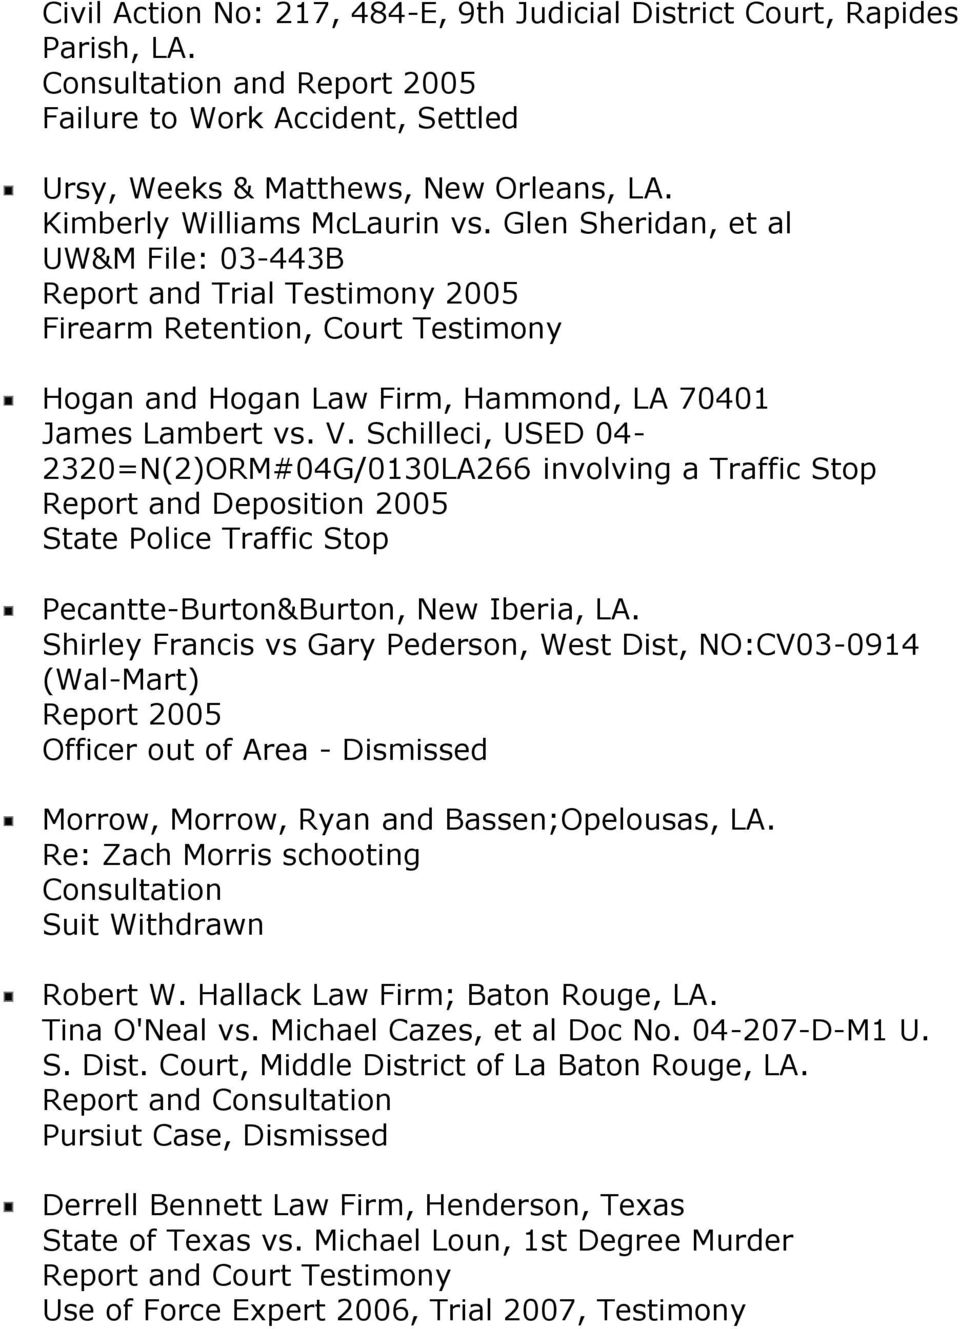 V. Schilleci, USED 04-2320=N(2)ORM#04G/0130LA266 involving a Traffic Stop Report and Deposition 2005 State Police Traffic Stop Pecantte-Burton&Burton, New Iberia, LA.